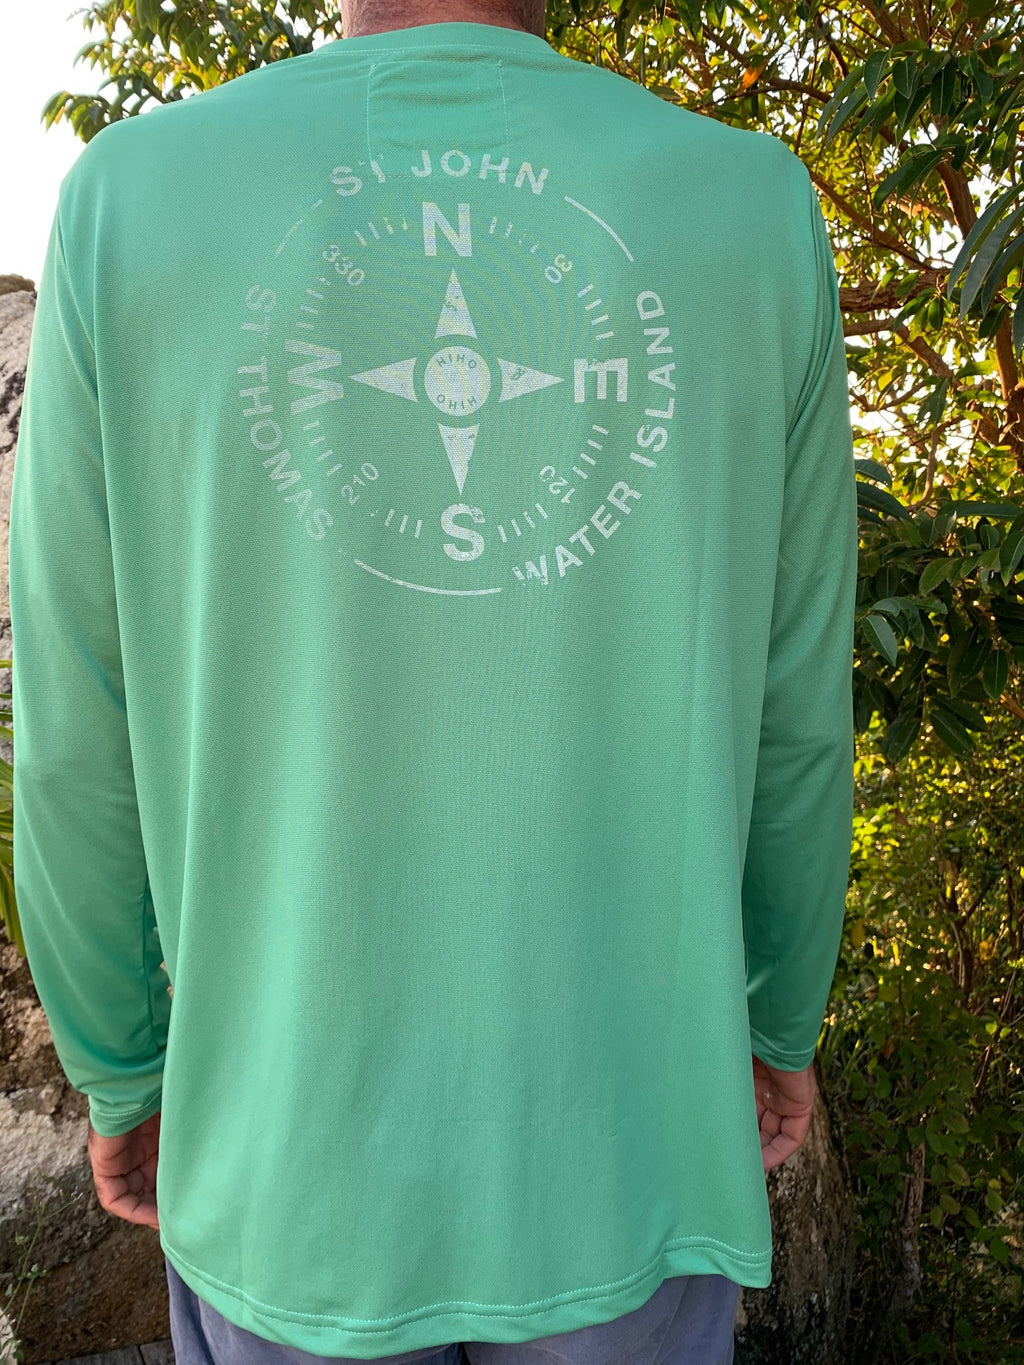 quick drying upf50 shirt with virgin islands compass graphic